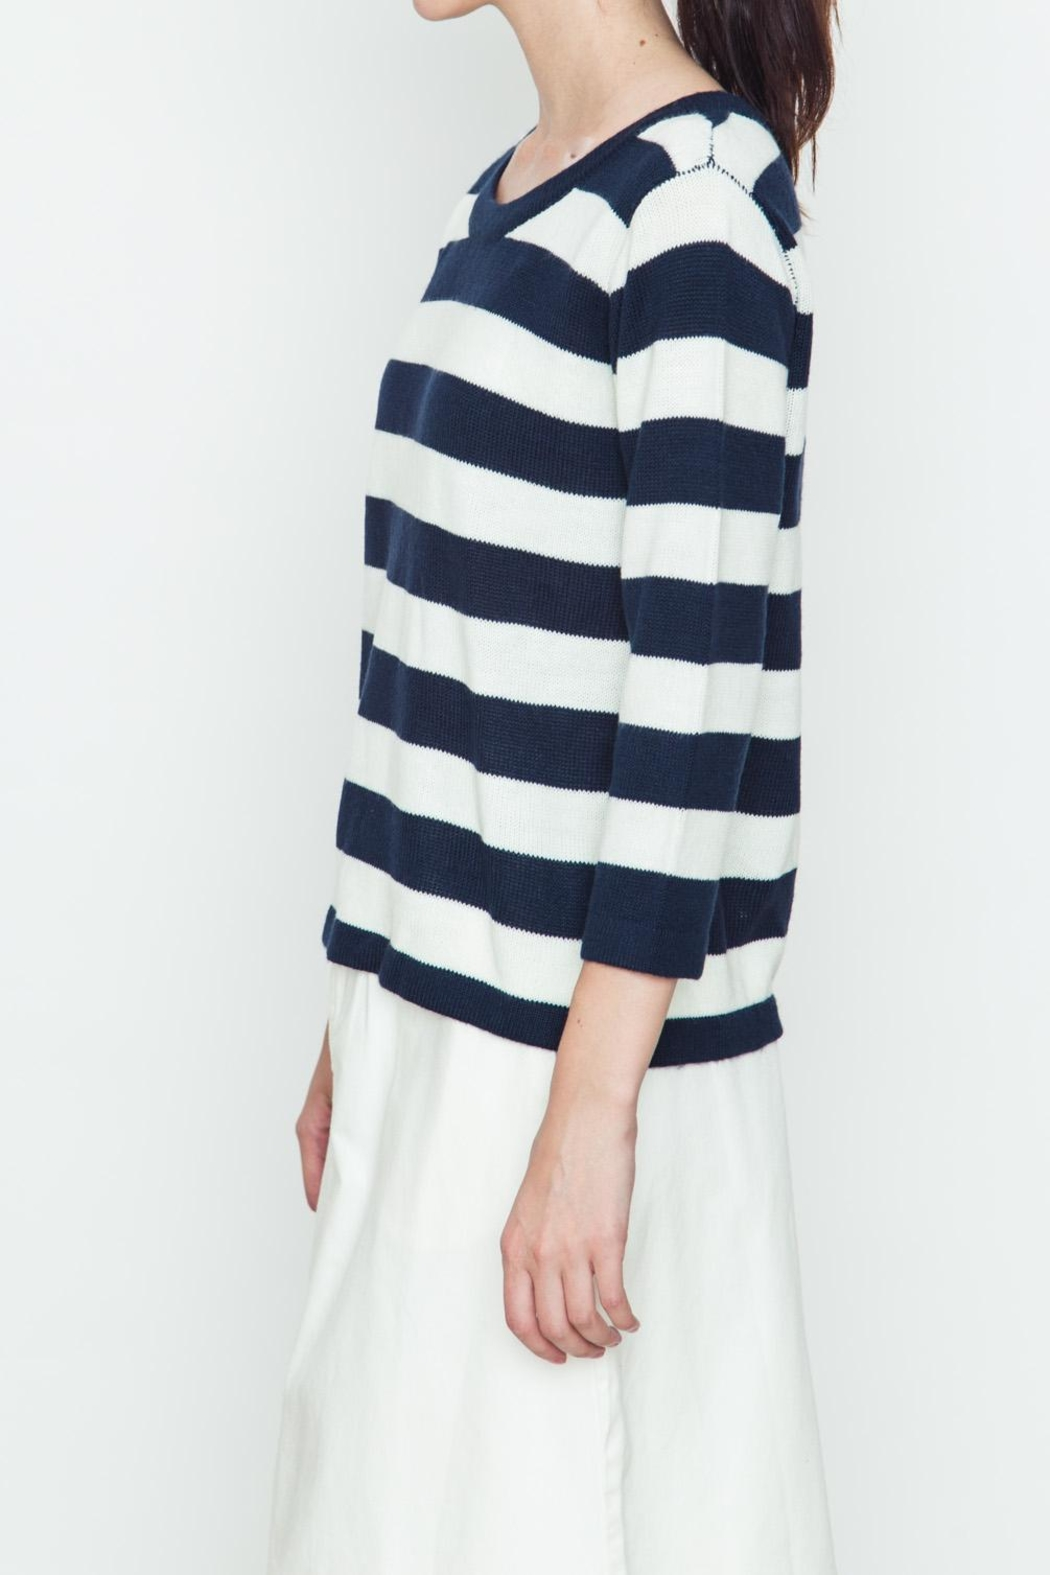 Movint Back Buttoned Striped Sweater - Front Full Image